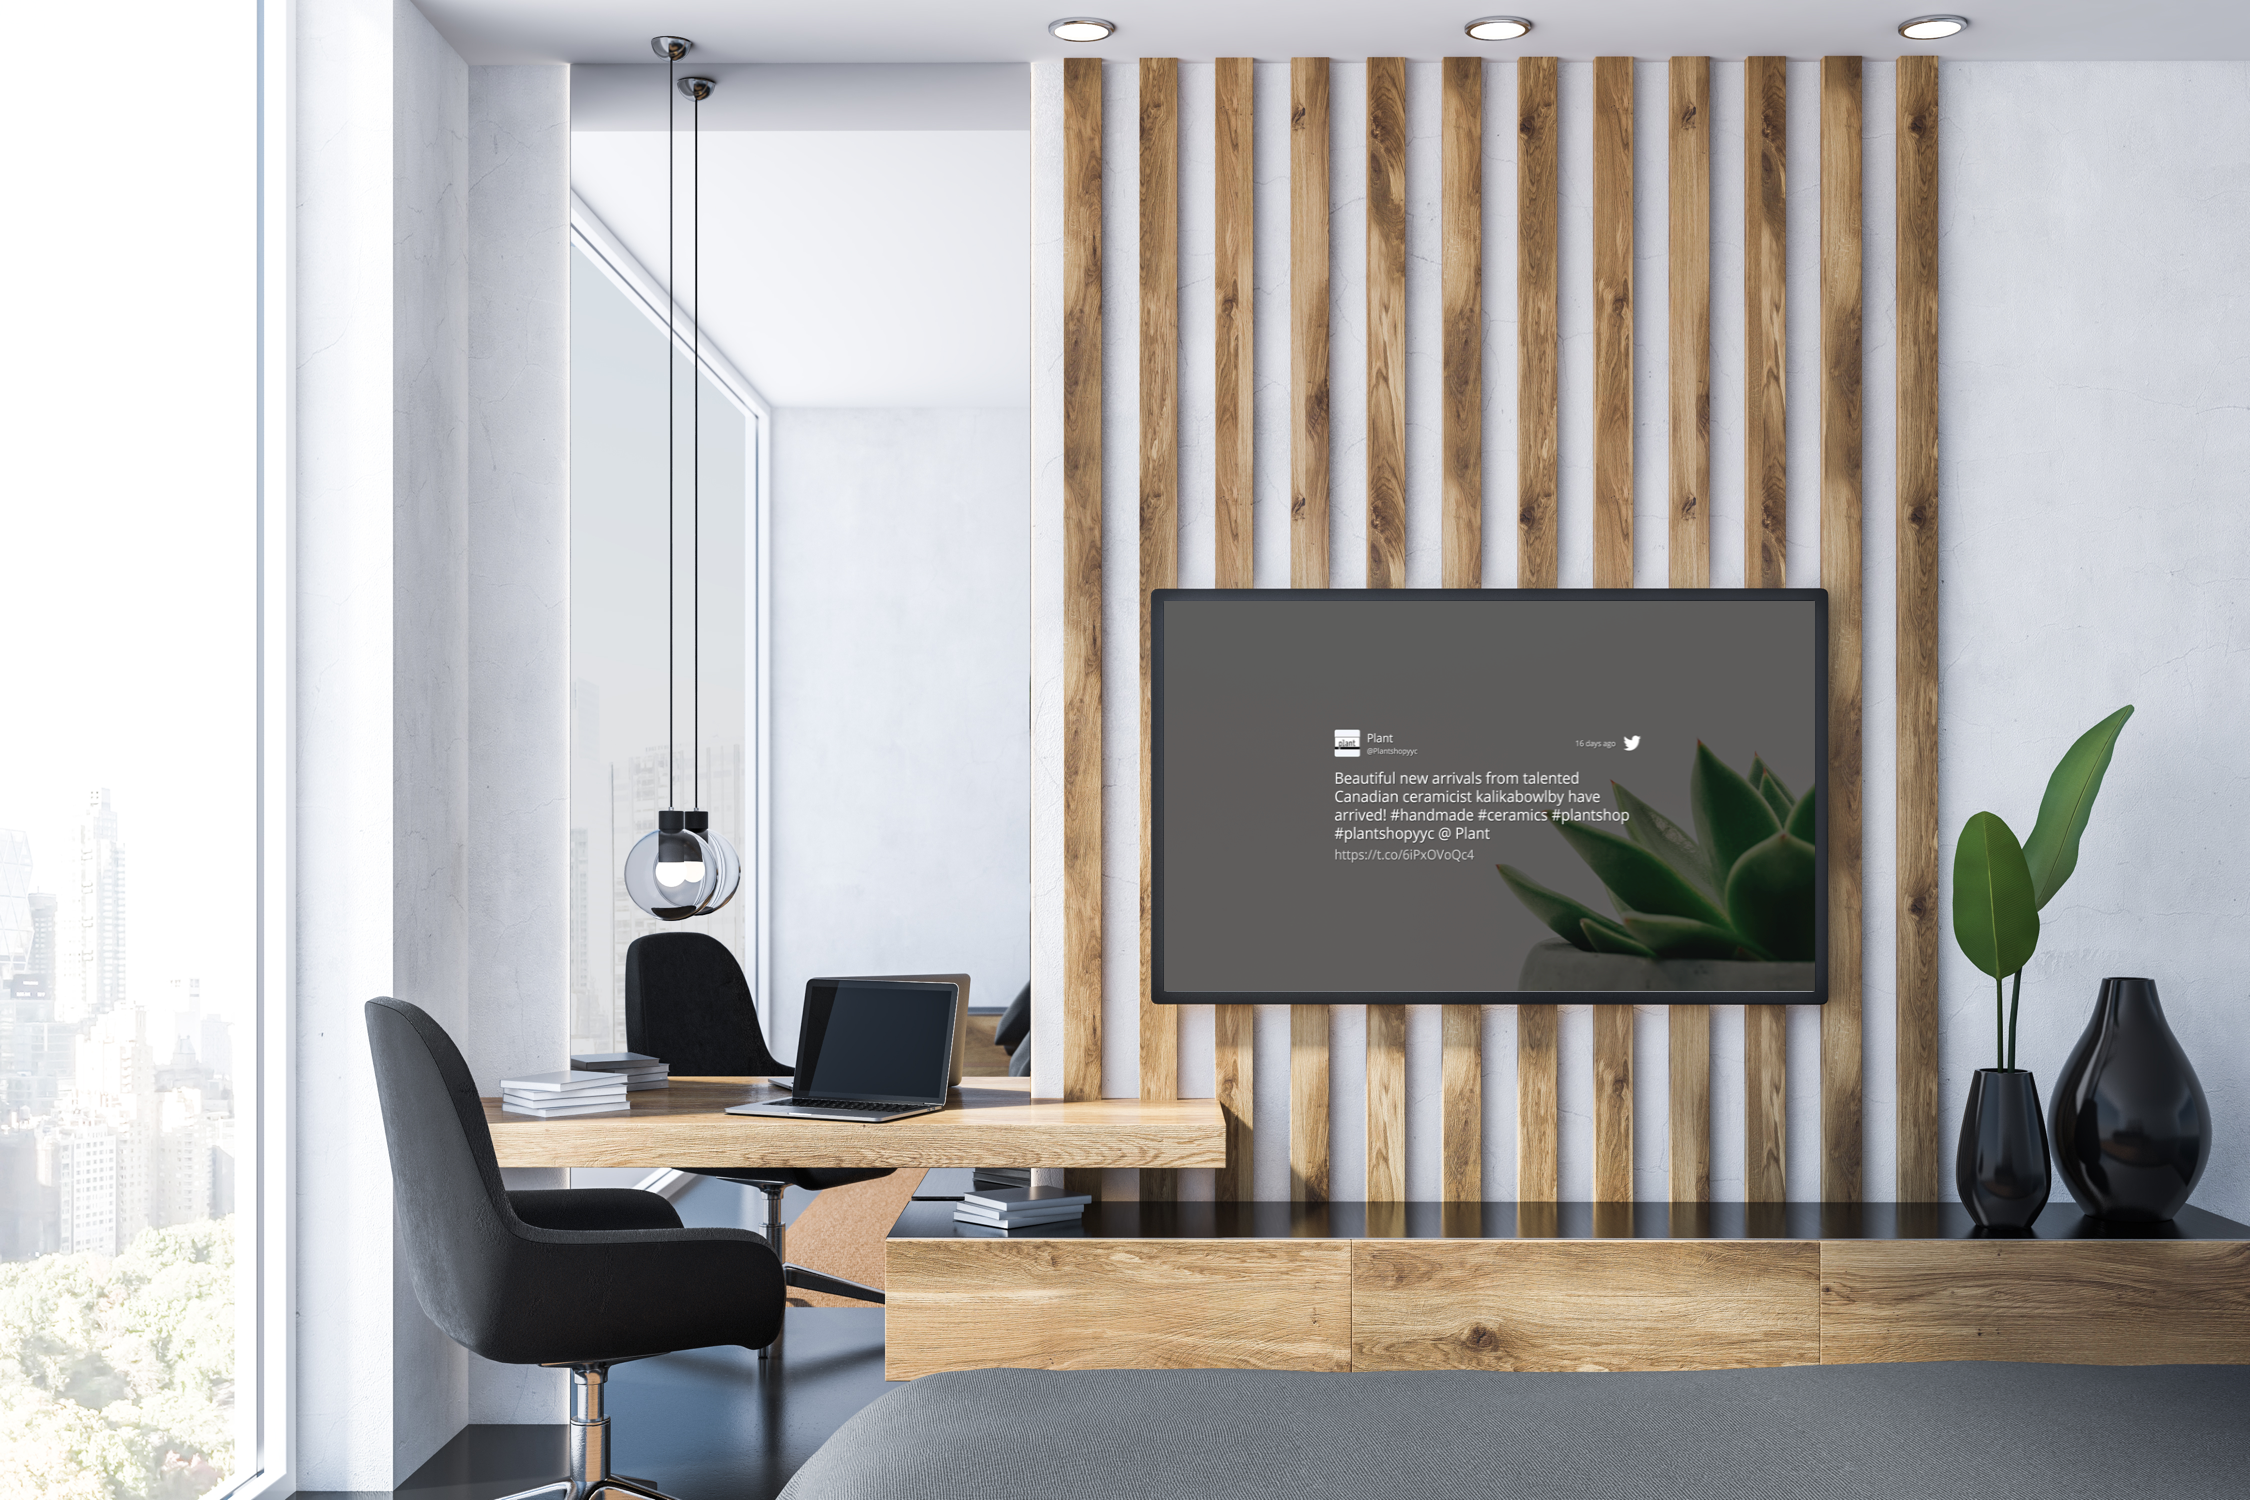 office digital signage